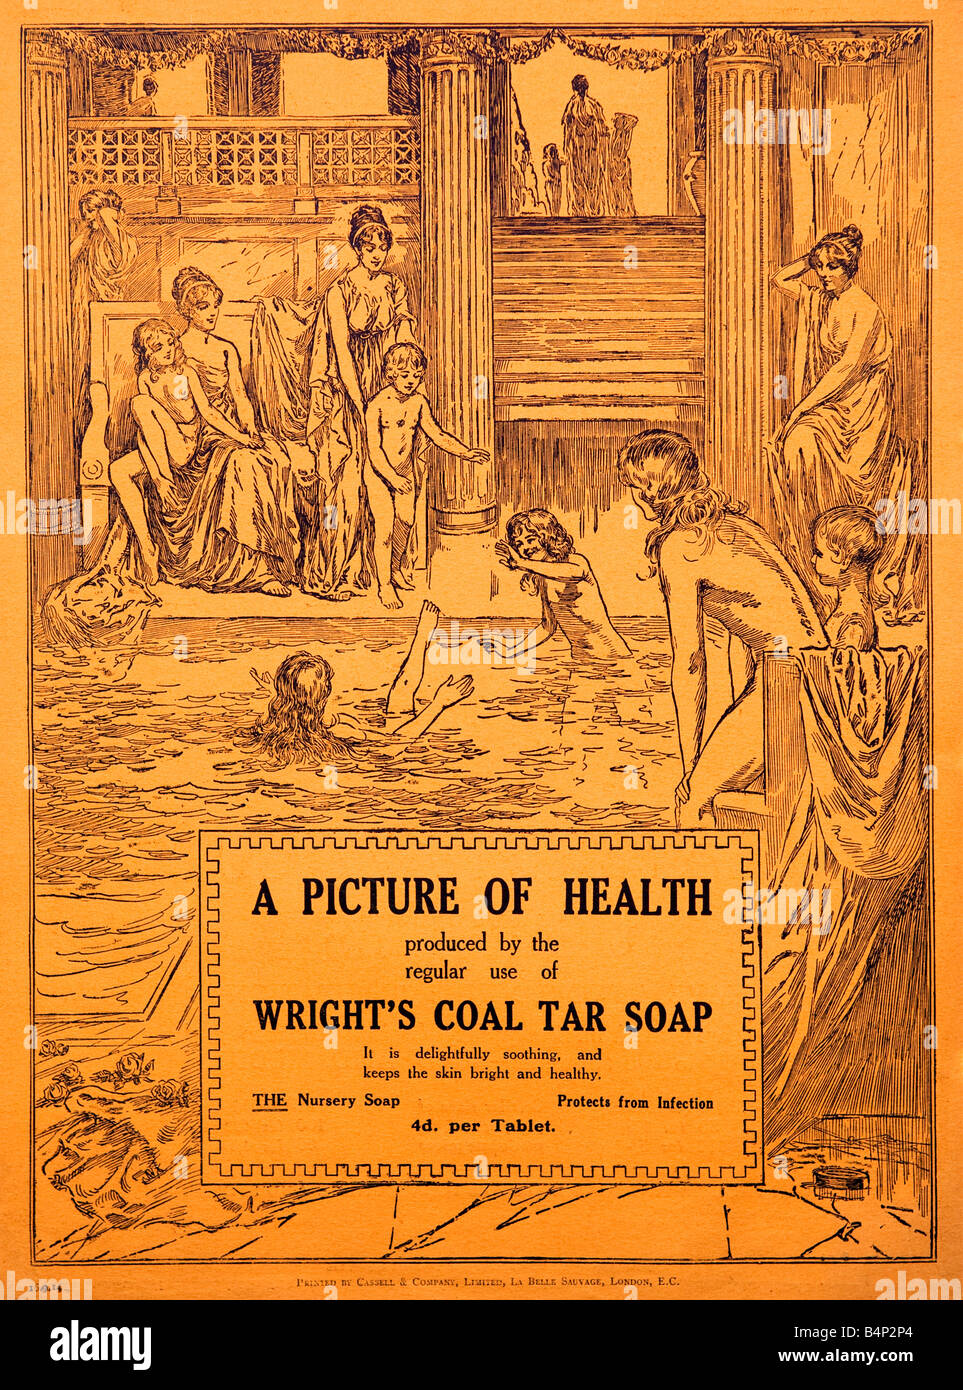 1915 advertisement for Wright's Coal Tar Soap  FOR EDITORIAL USE ONLY Stock Photo